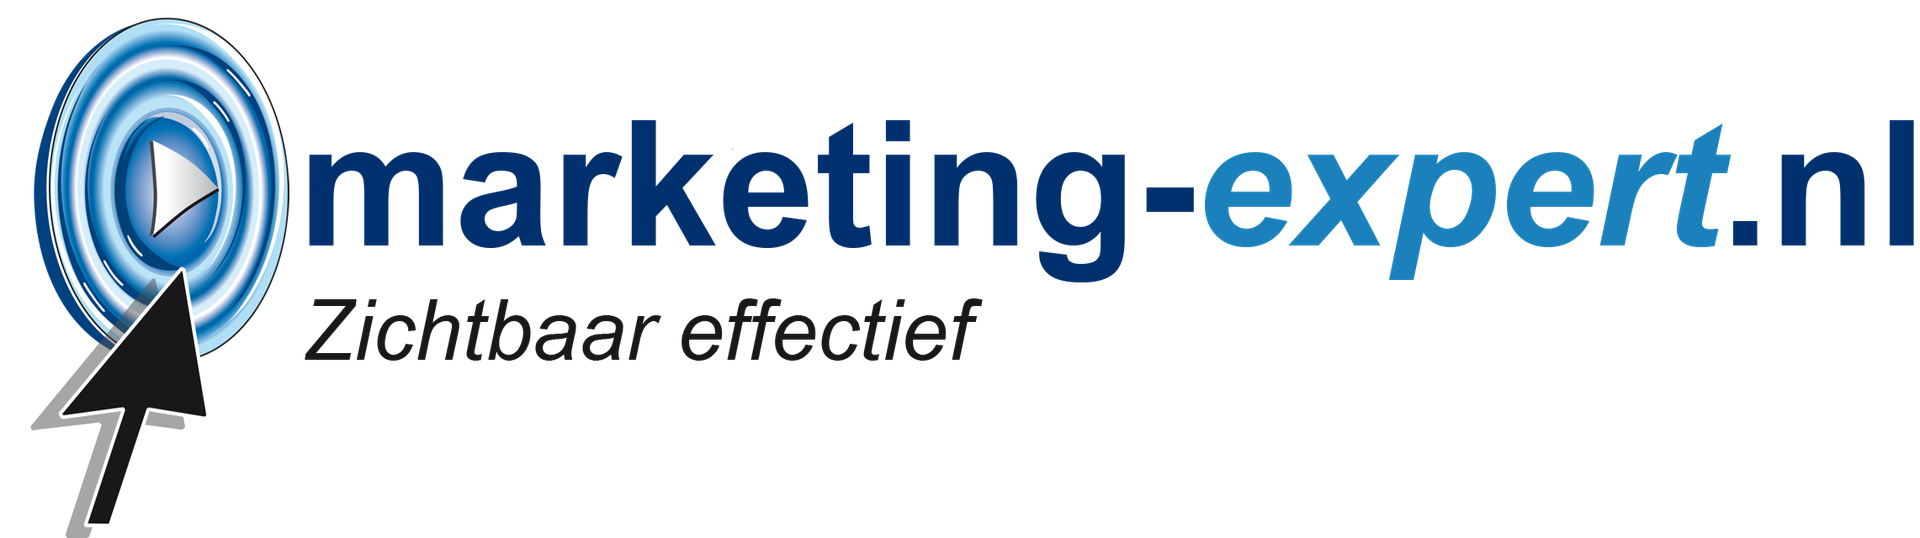 Marketing-expert.nl, zichtbaar effectief met marketing en communicatie.